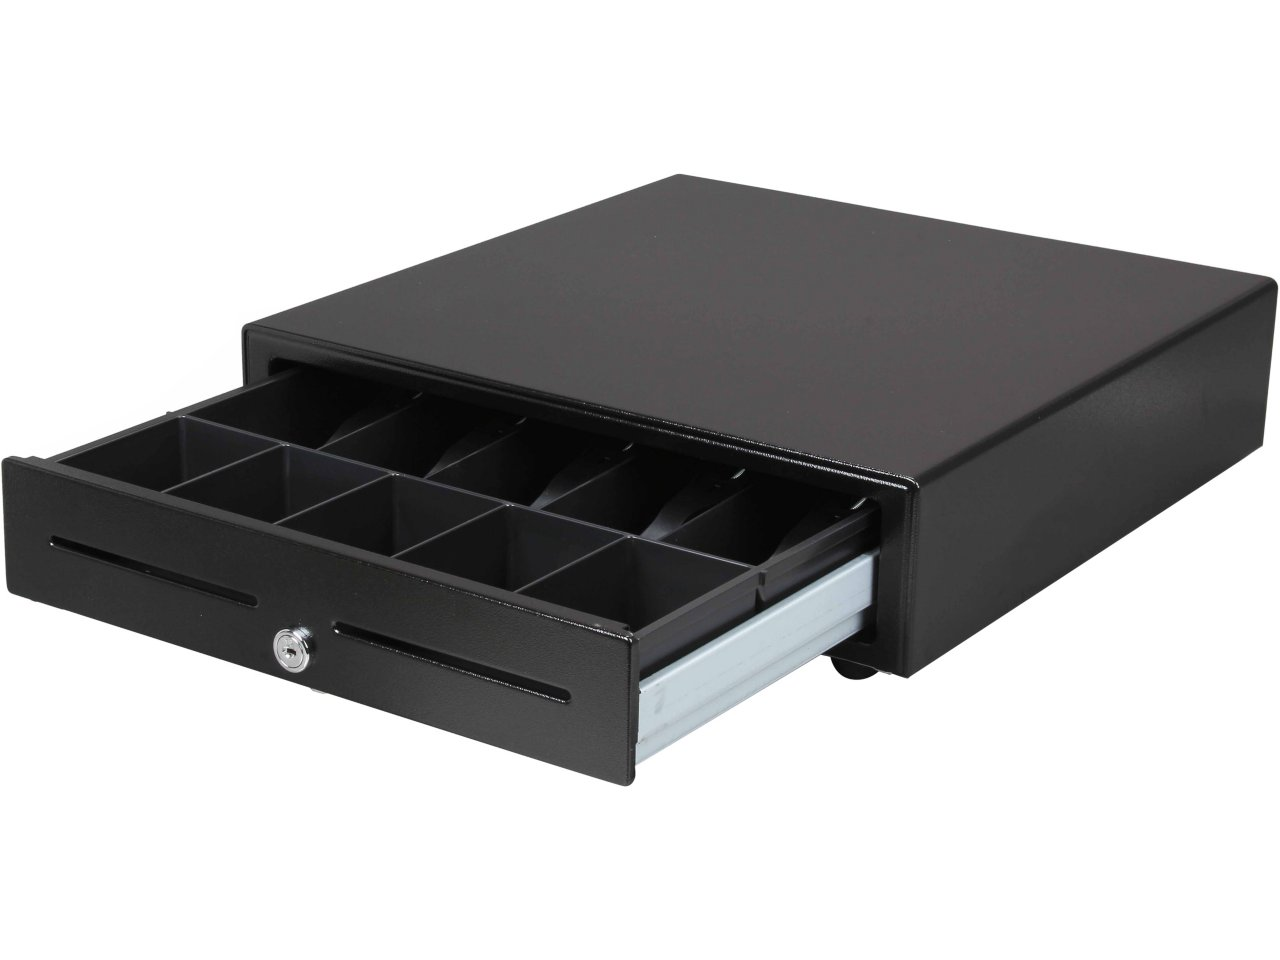 APG Cash Drawer - Black 16 x 16 Vasario Series, VB320-BL1616 MAIN